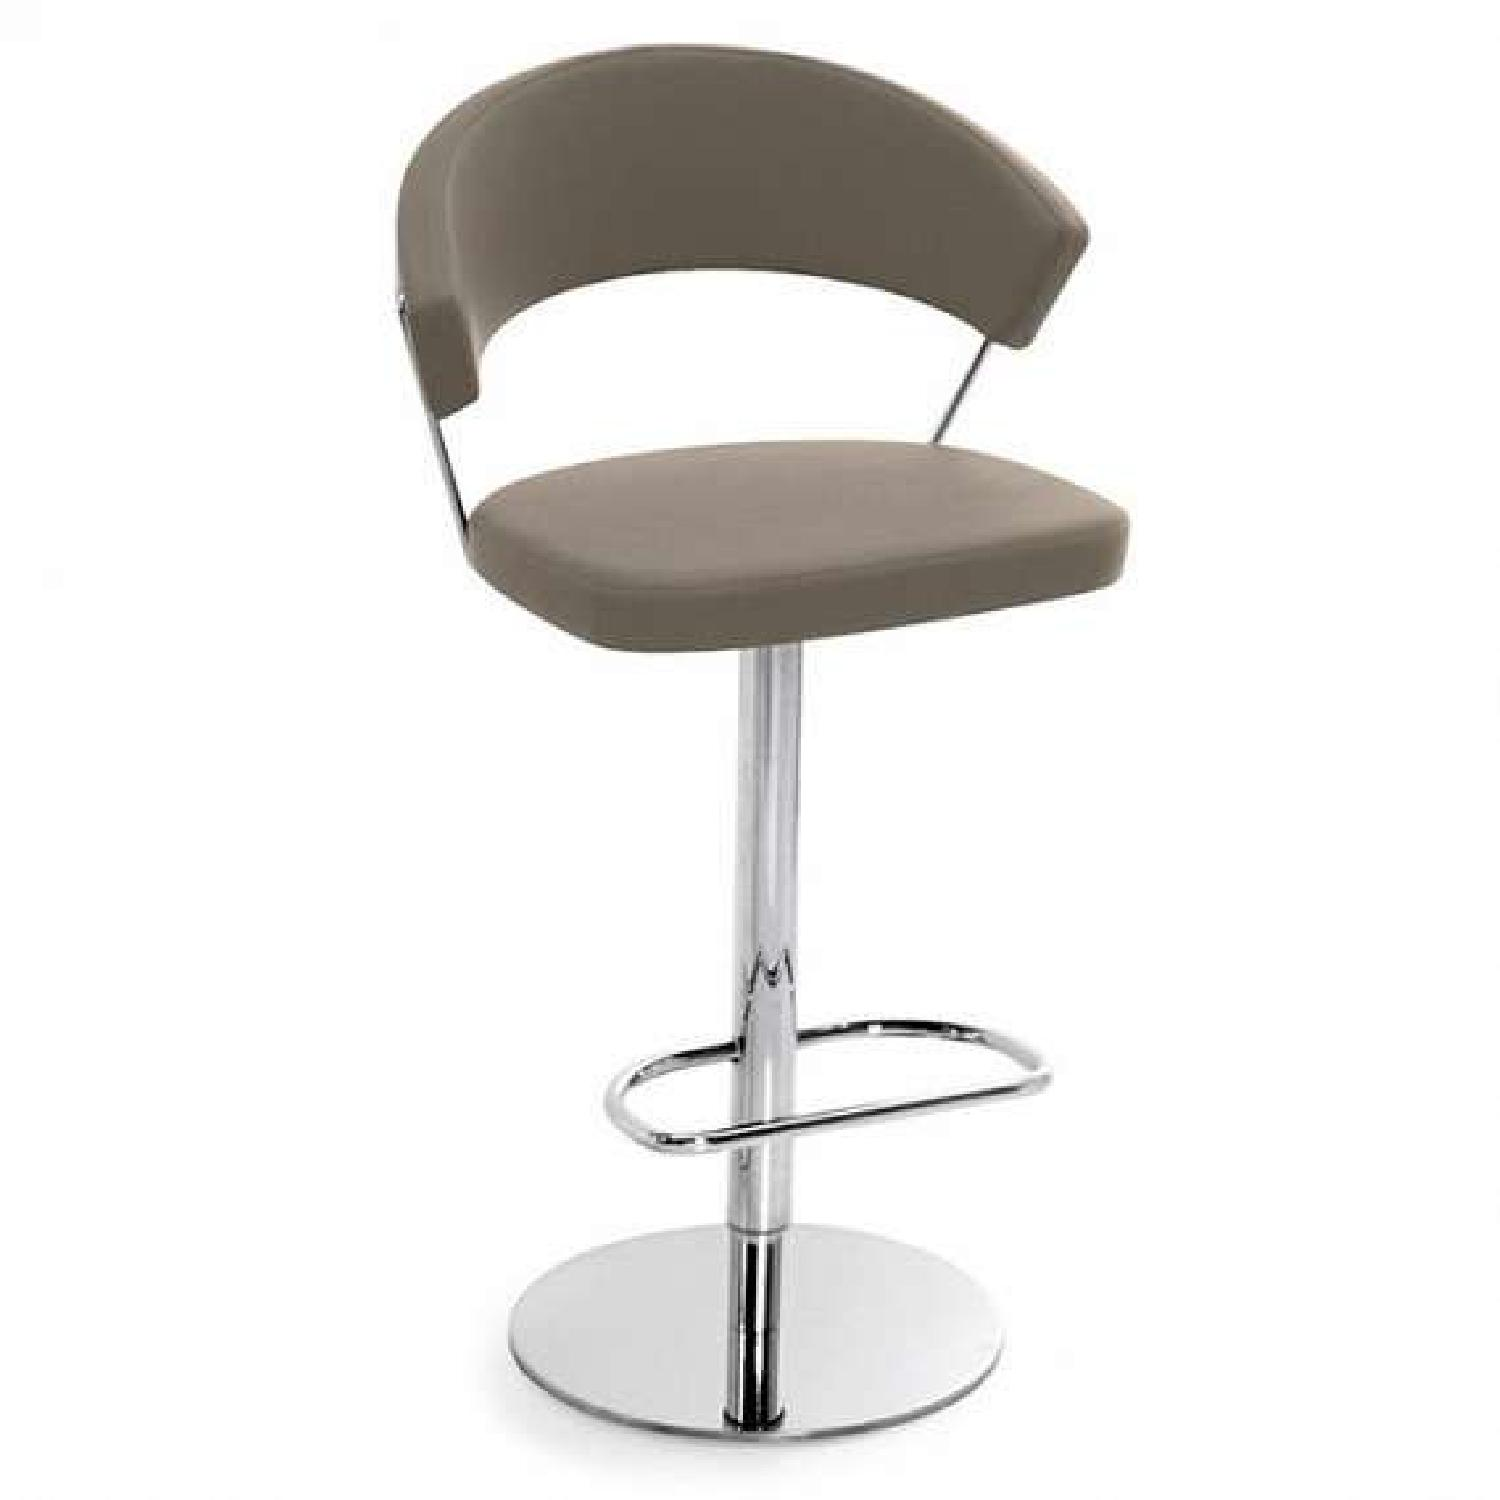 Calligaris Grey Leather Adjustable Stools w/ Backrest - image-0